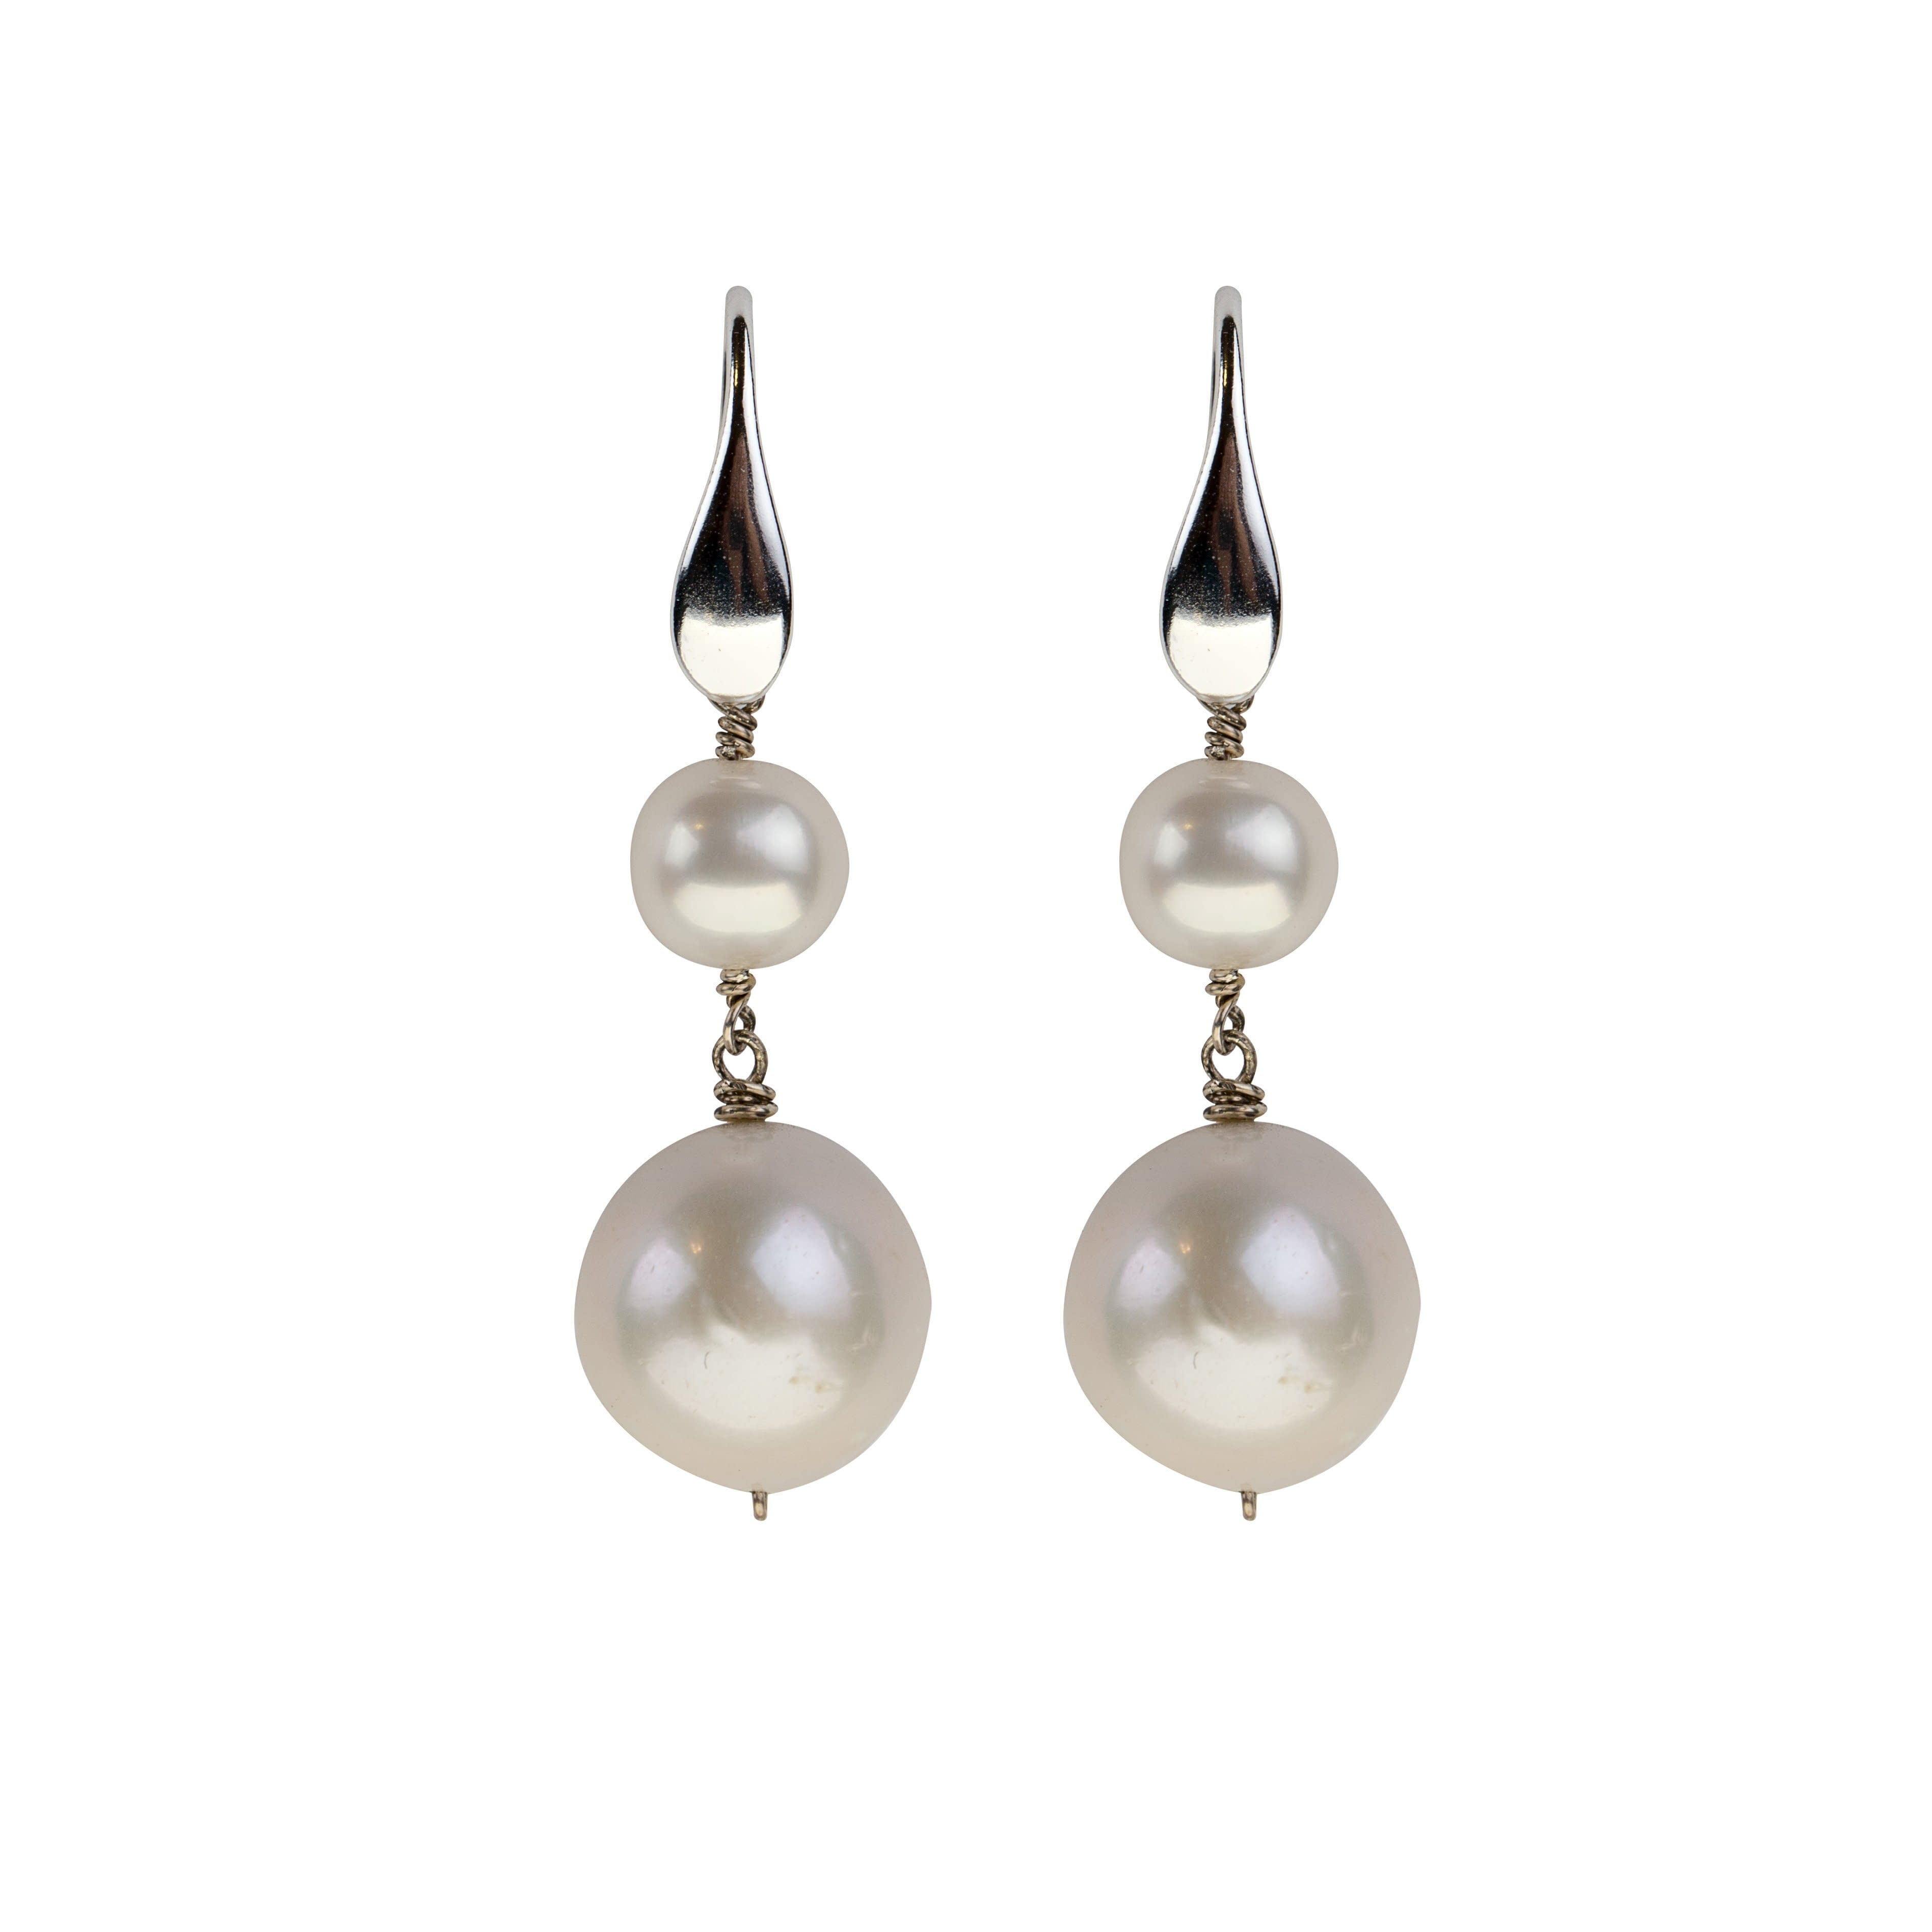 White Freshwater Pearl Earrings - Karlas Jewelry & Gifts